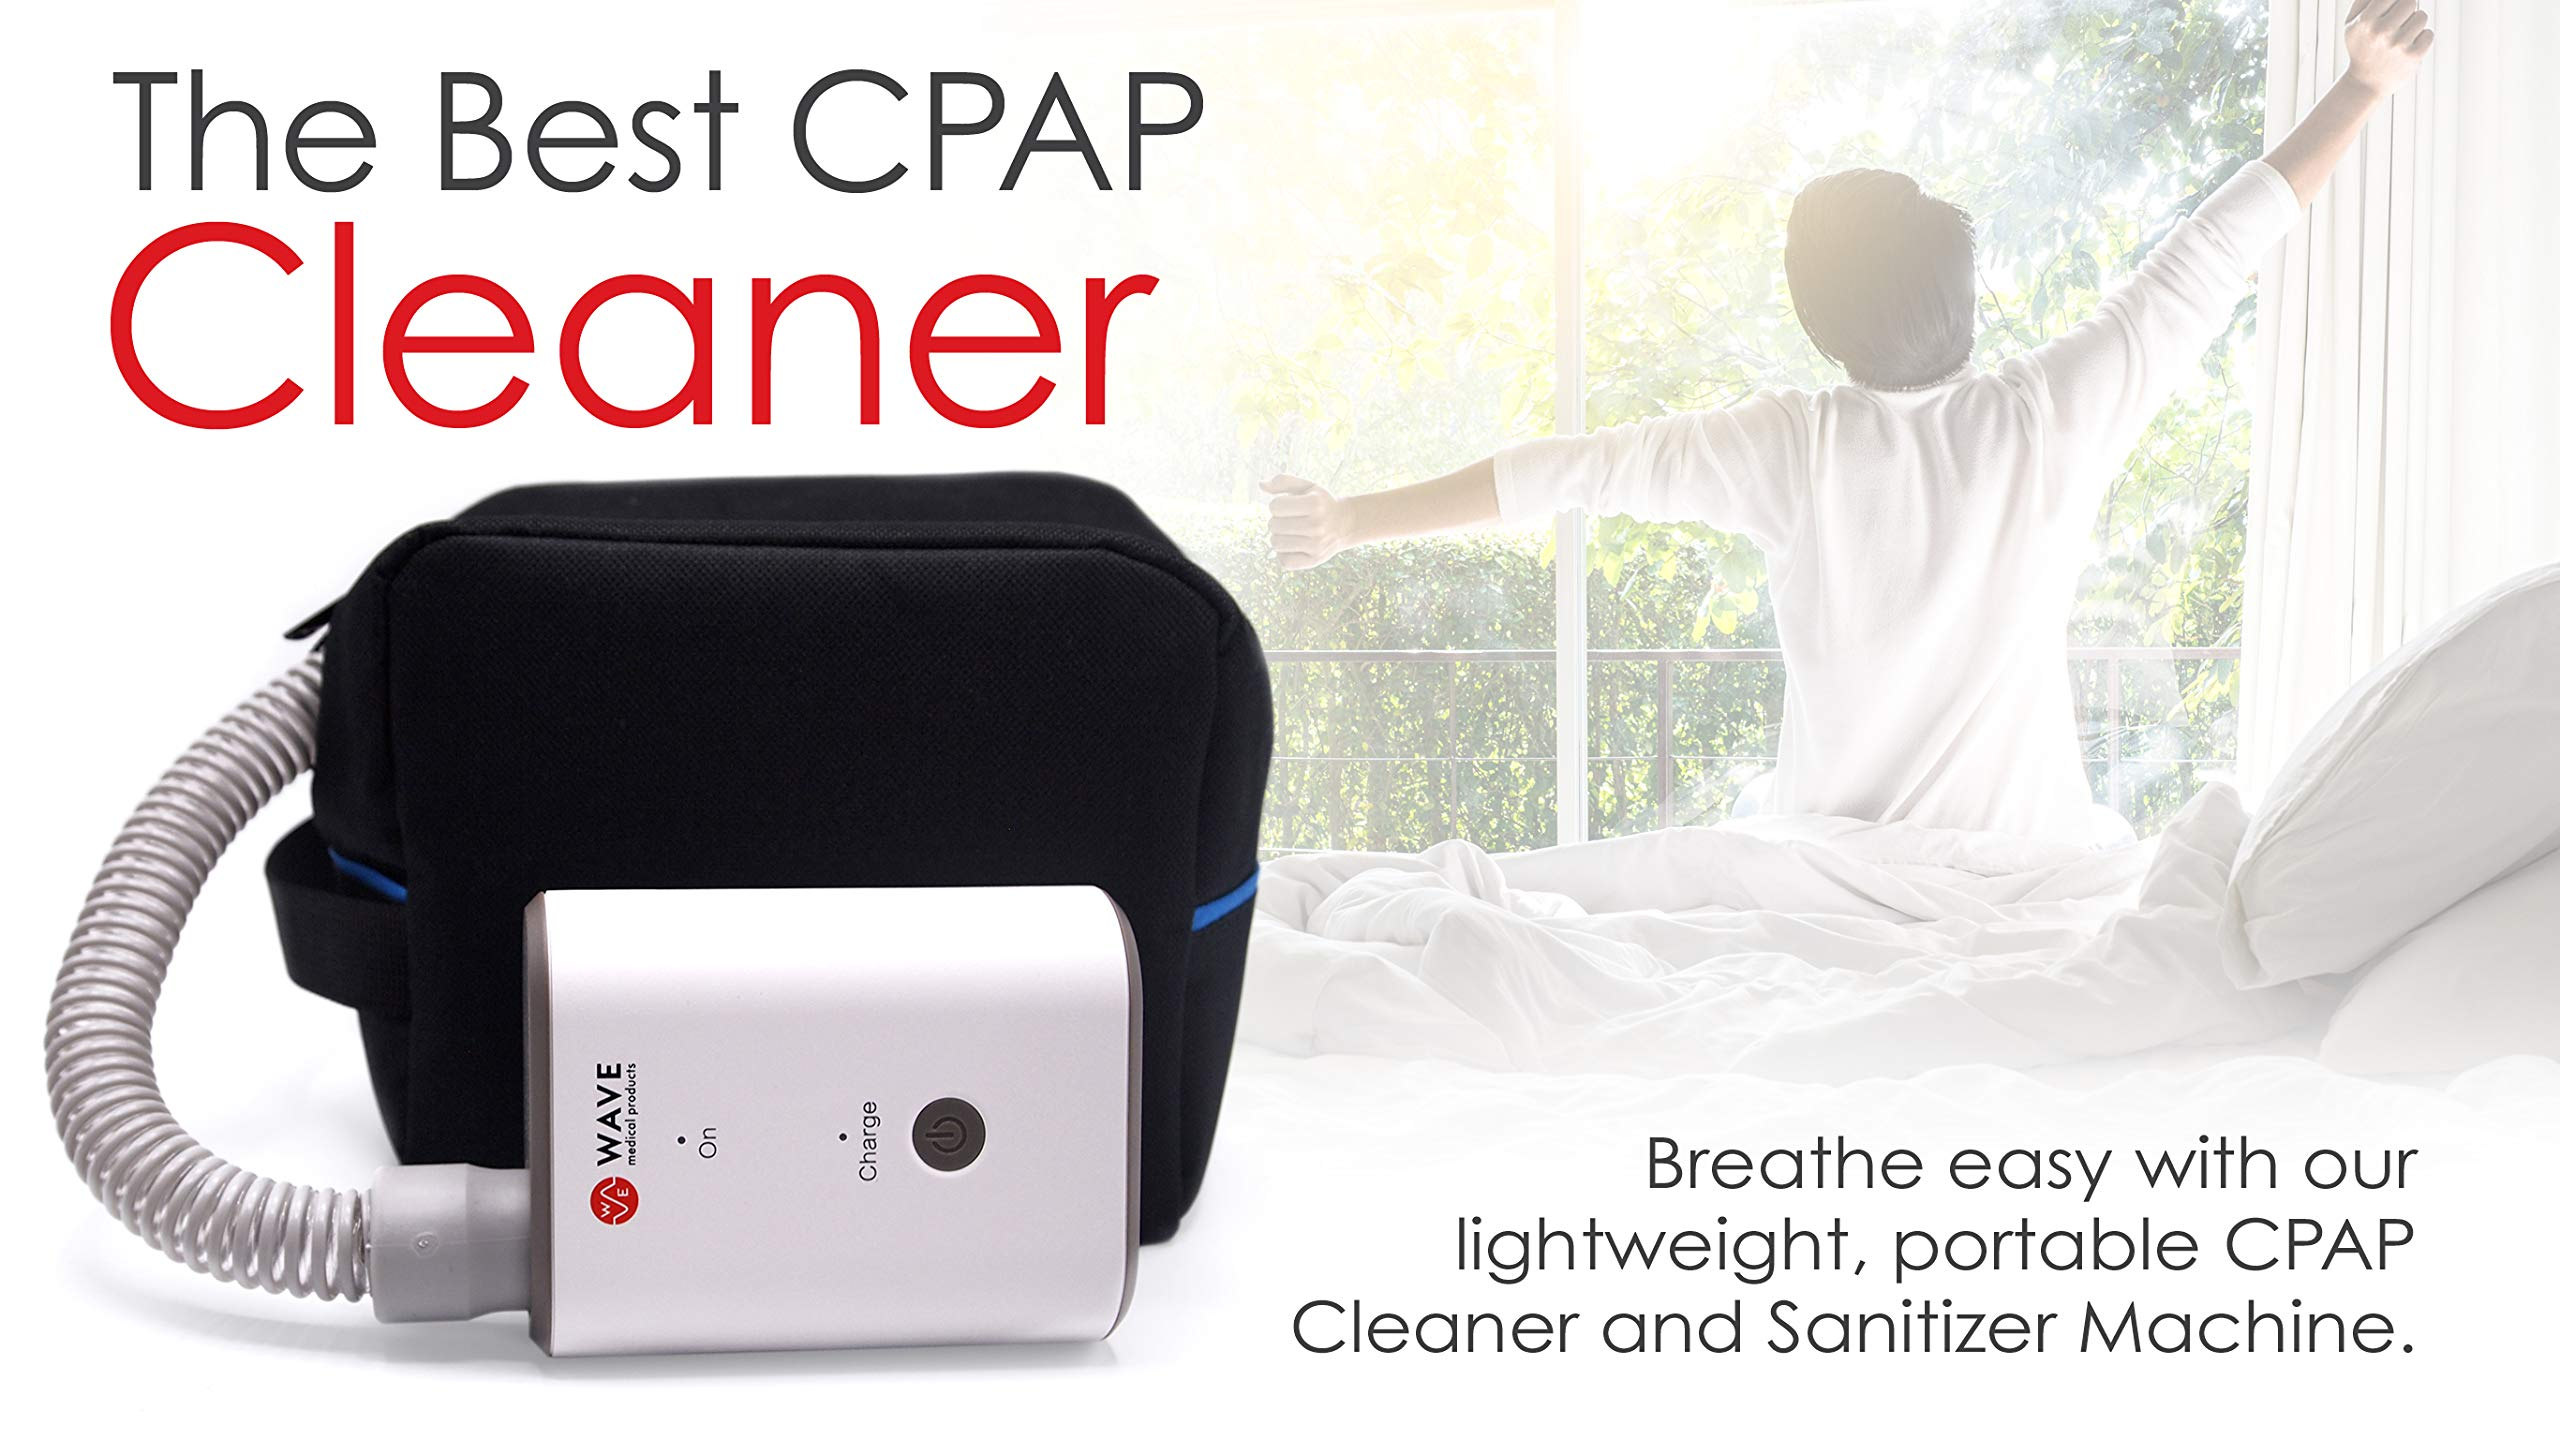 Wave Medical Portable CPAP Cleaner and Sanitizer Bundle Cleans CPAP Machine, Mask, Pillow - CPAP Cleaner Includes Sealed Sanitizing Bag, Heated Hose Adapter, Airmini Adapter, 6 Foot CPAP Hose by Wave Medical Products (Image #5)